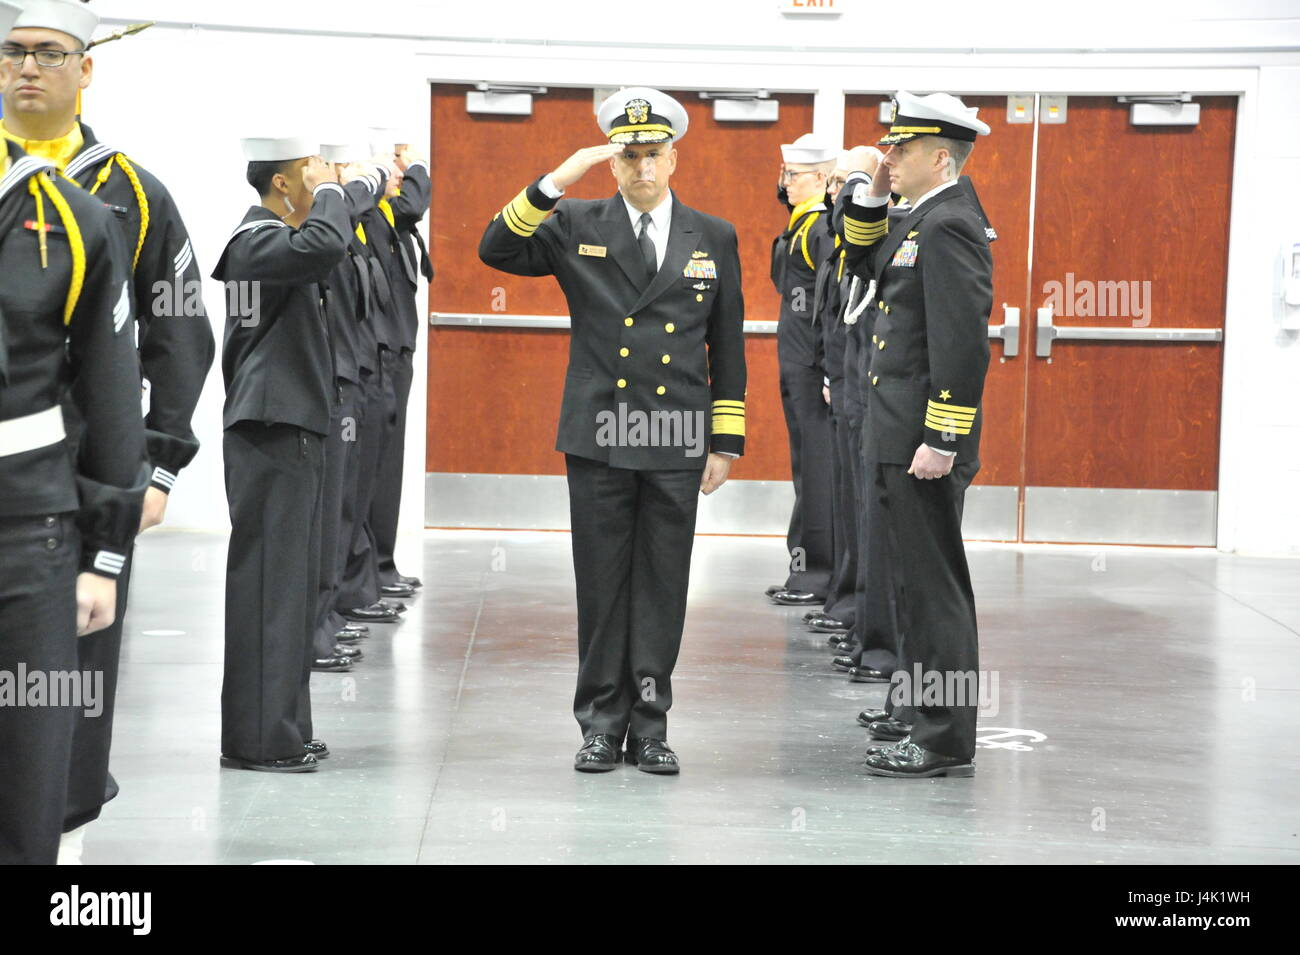 161216-N-CM124-129  GREAT LAKES, Ill. (Dec. 16, 2016) Chief of Naval Personnel Robert P. Burke is introduced to - Stock Image